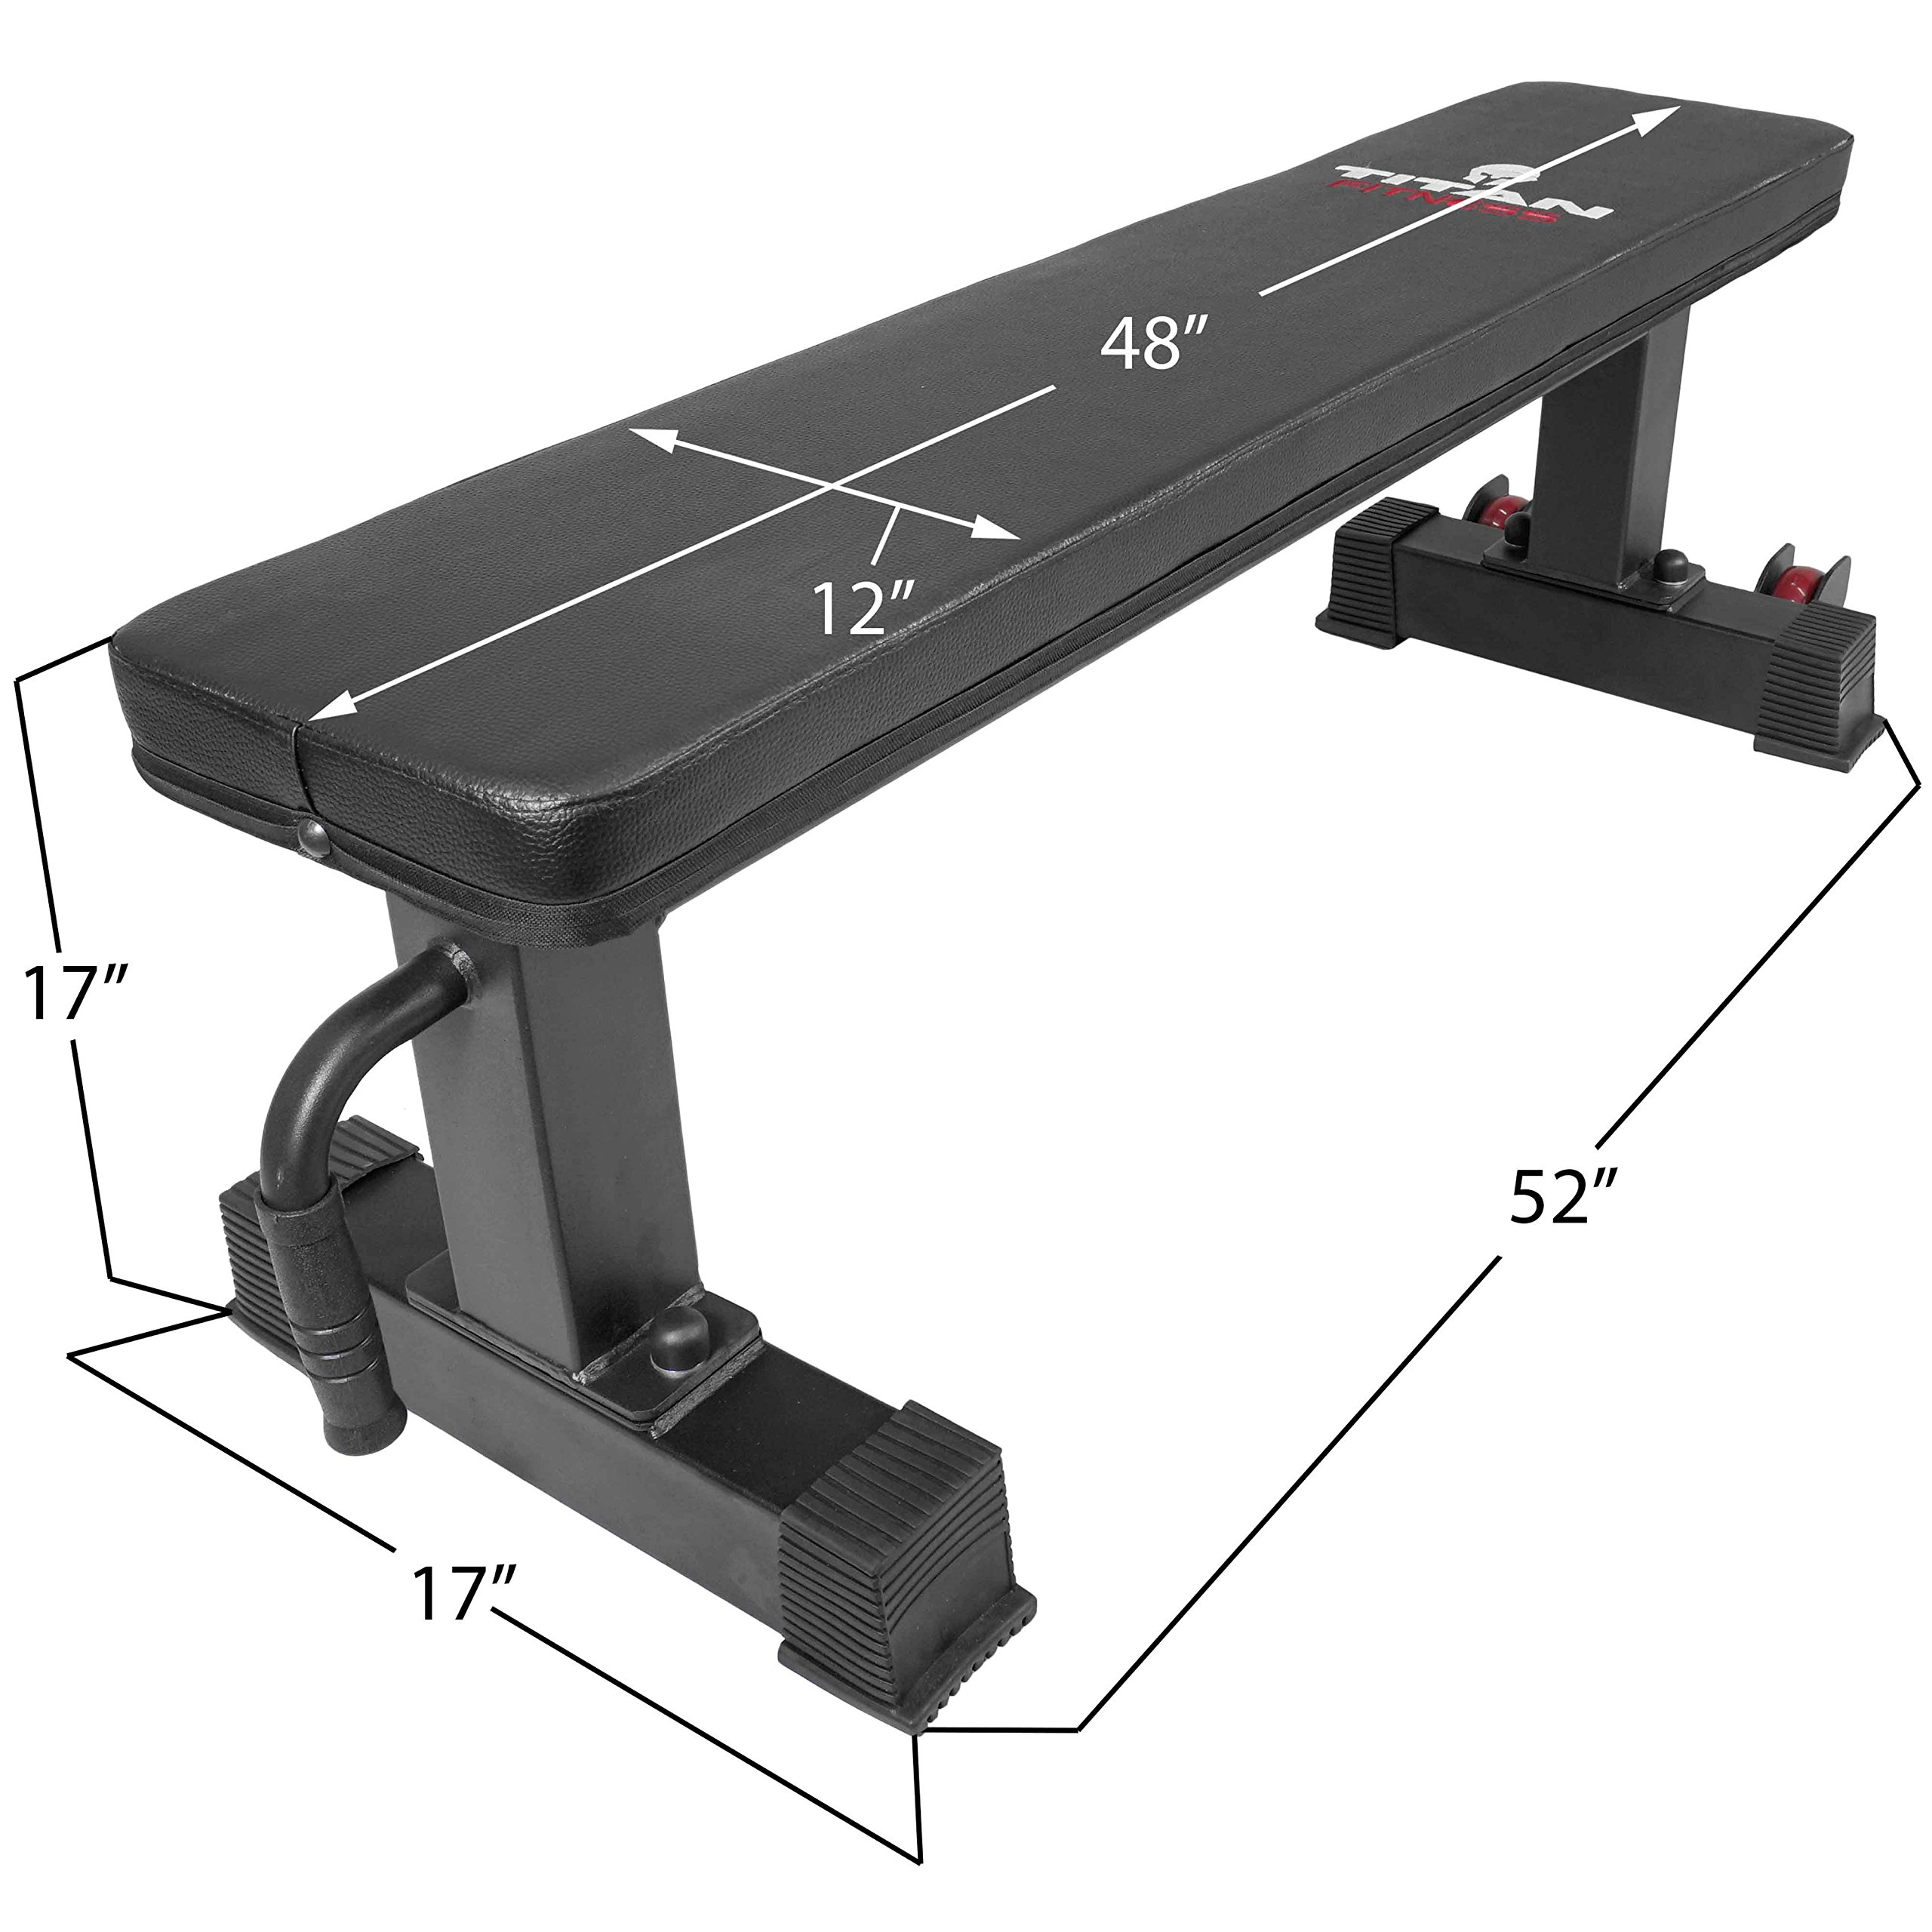 Titan Fitness Flat Weight Bench 1,000 lb Rated Capacity w/ Handle & Wheels by Titan Fitness (Image #1)